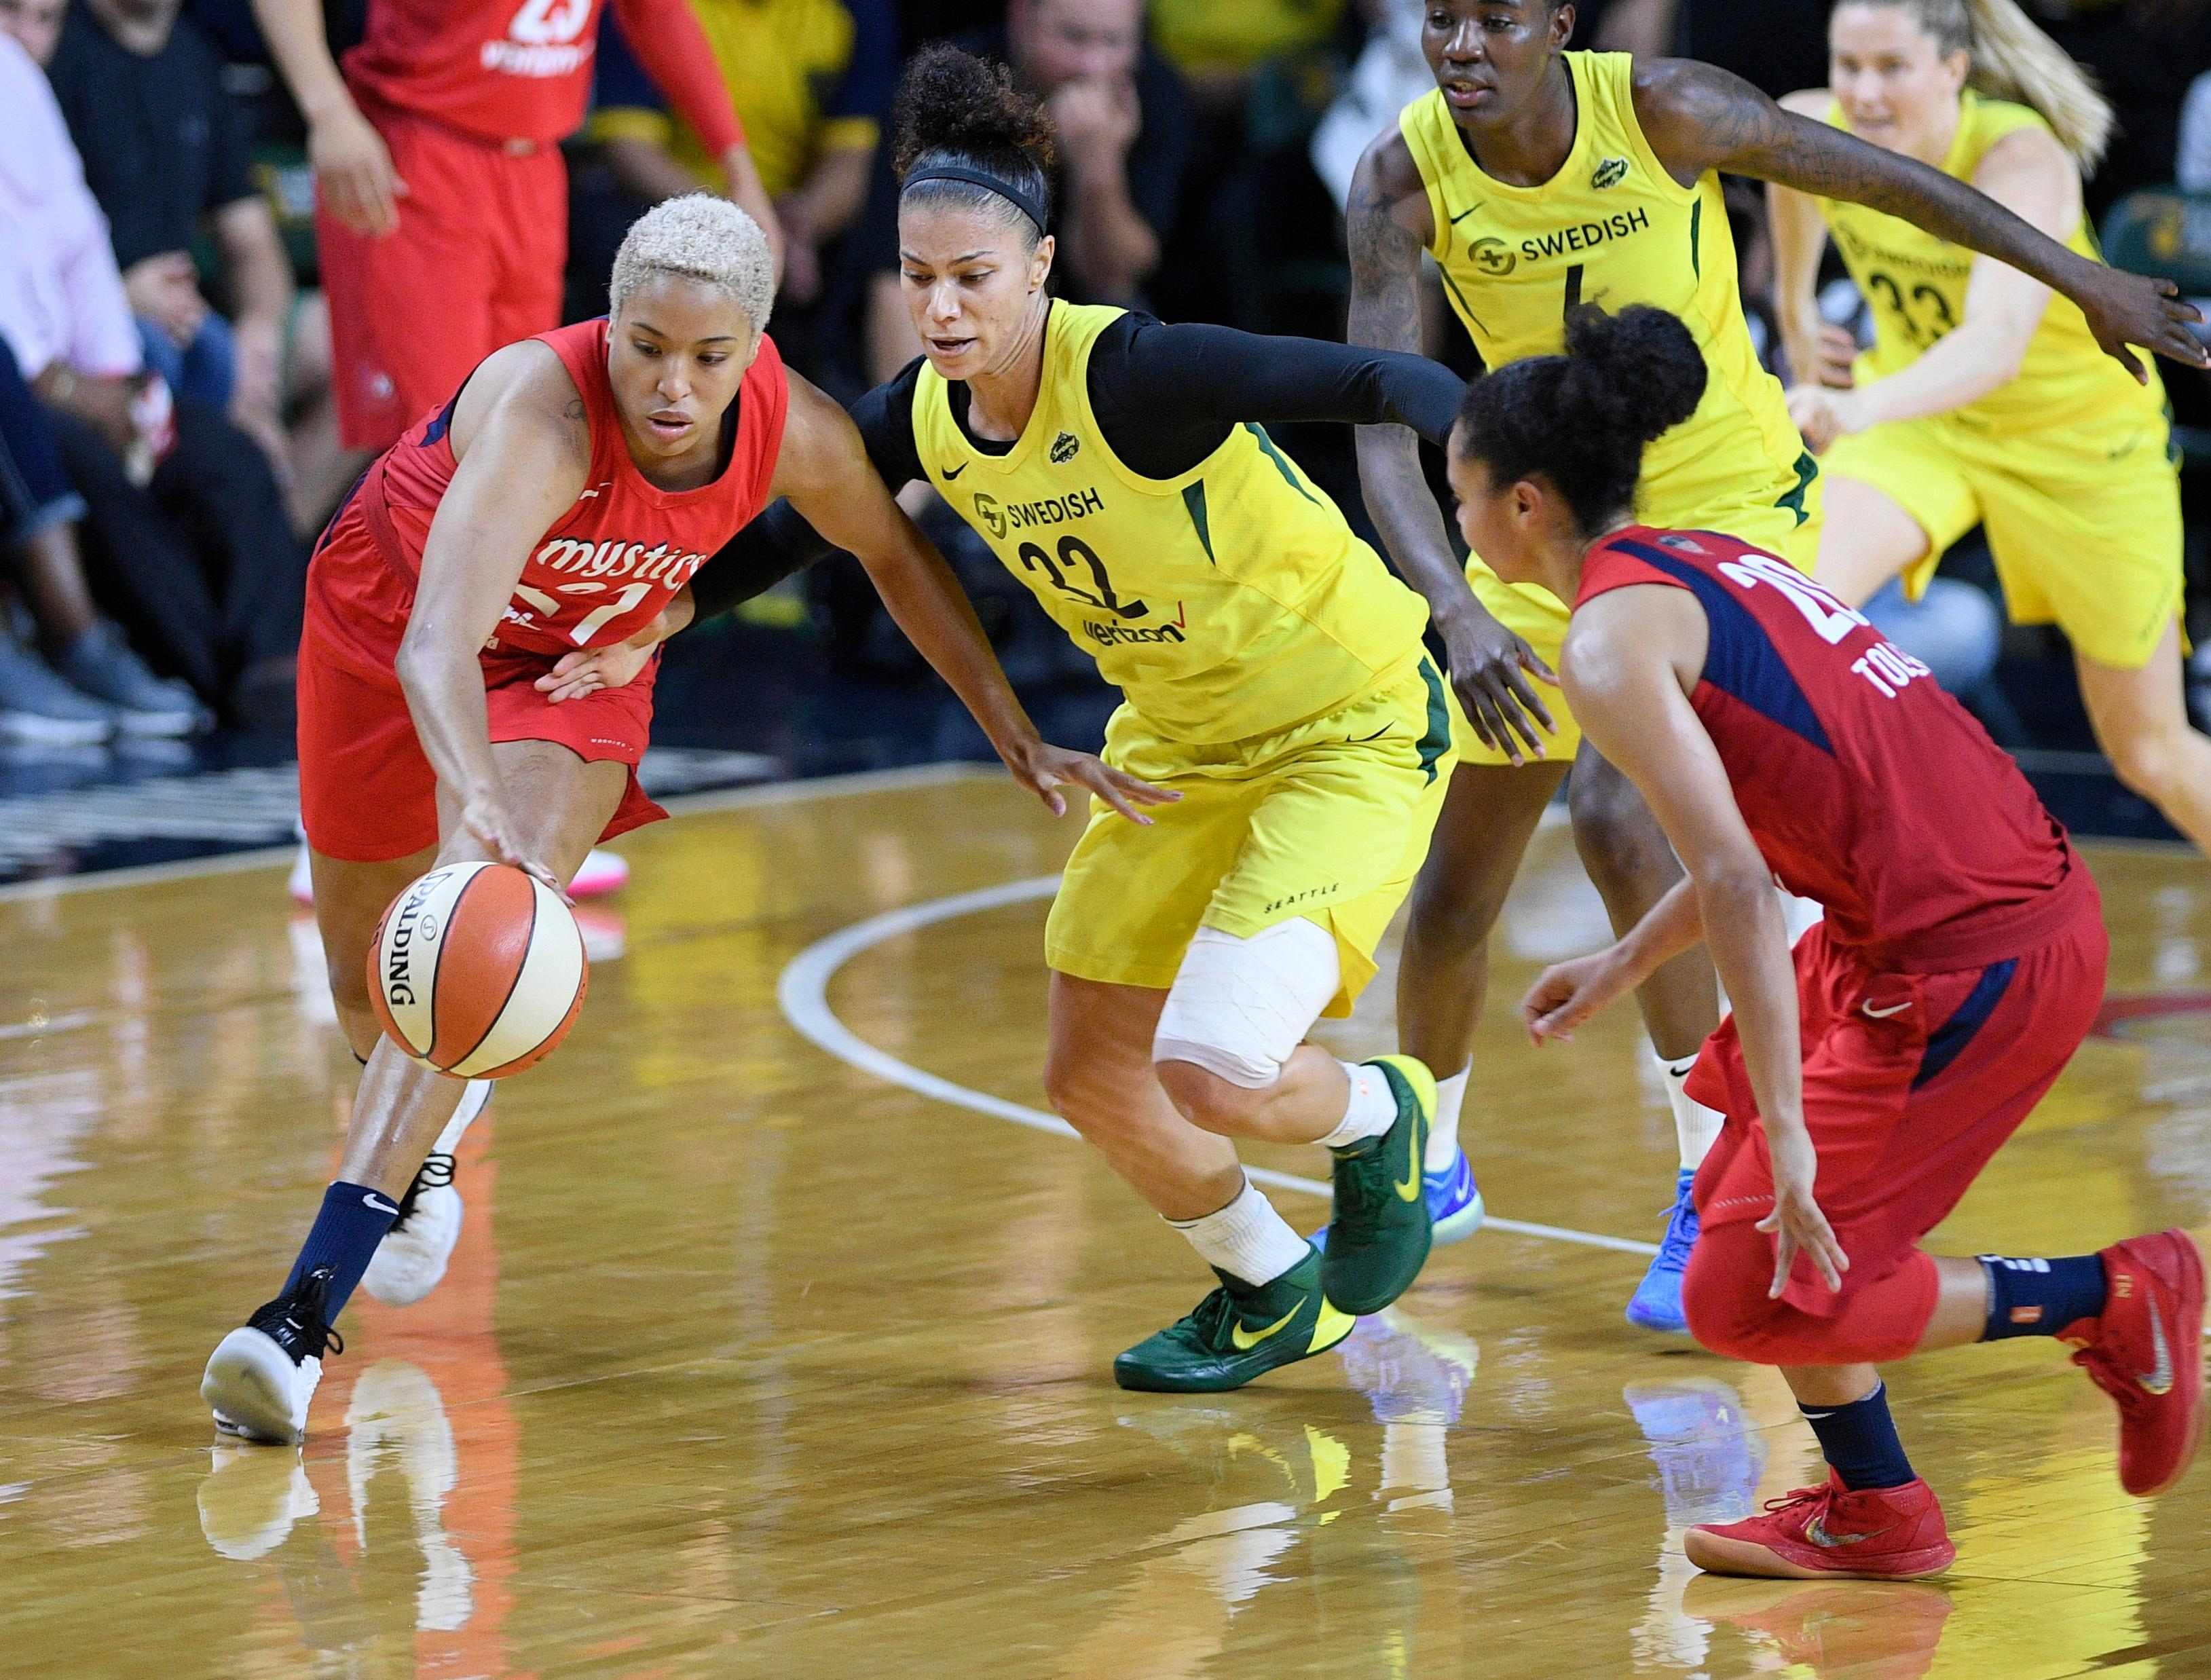 Washington Mystics forward Tianna Hawkins (21) battles for the ball against Seattle Storm forward Alysha Clark (32) during the first half of Game 3 of the WNBA basketball finals, Wednesday, Sept. 12, 2018, in Fairfax, Va. Also seen is Mystics guard Kristi Toliver, right. (AP Photo/Nick Wass)